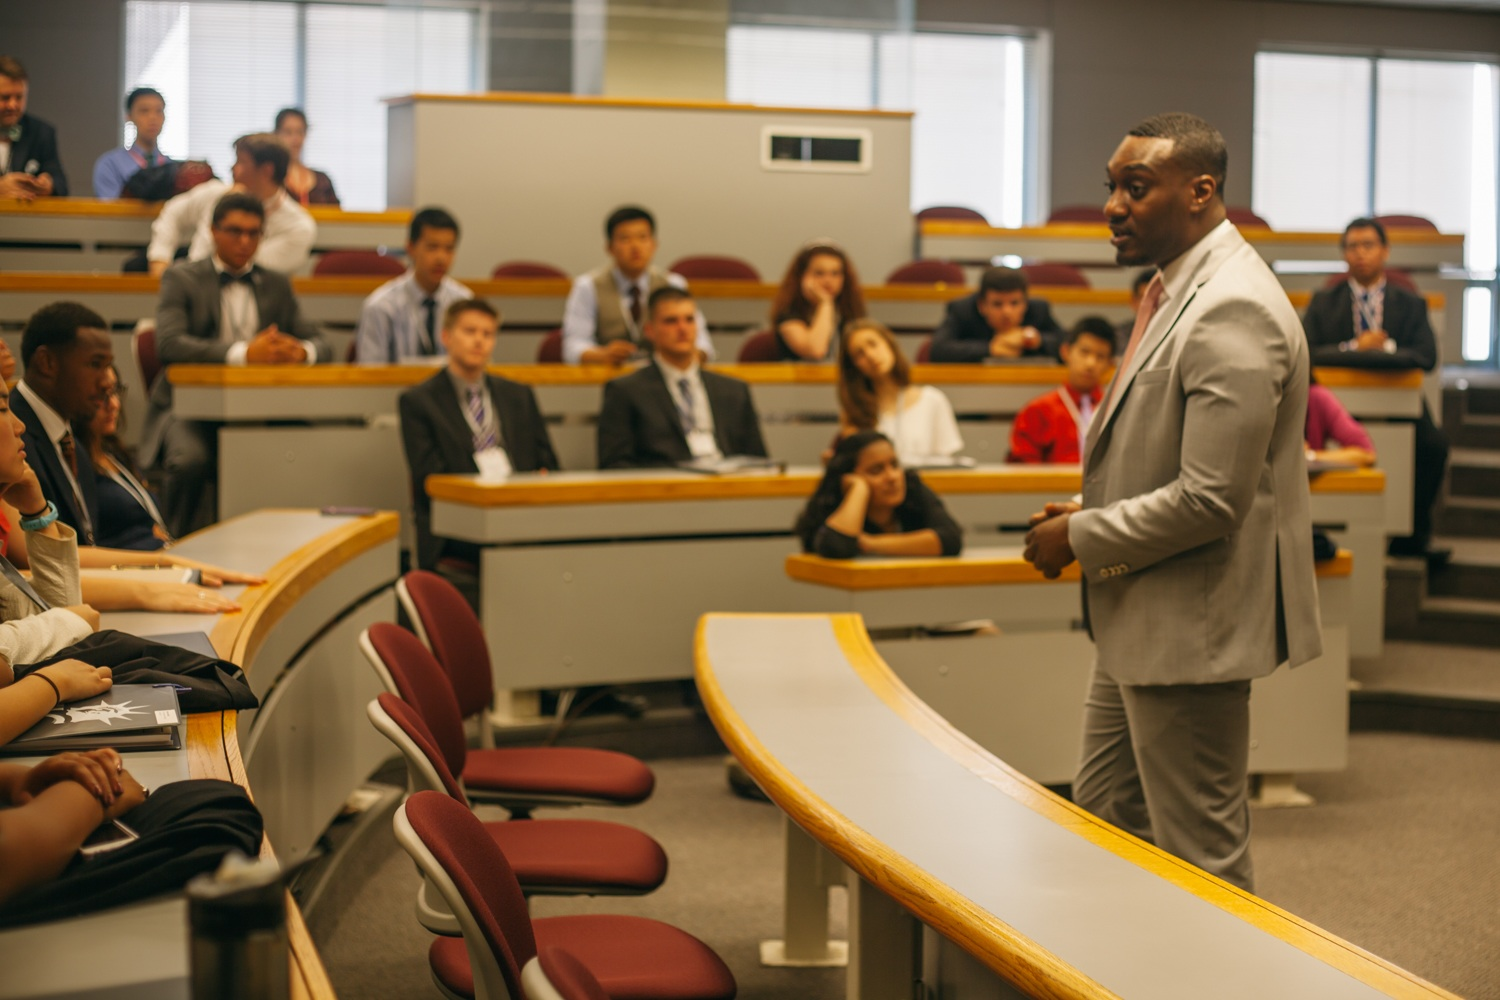 Whats The Story With Fosamax Harvard Health Howard To Harvard An Inside Look At Mentoring In Stem